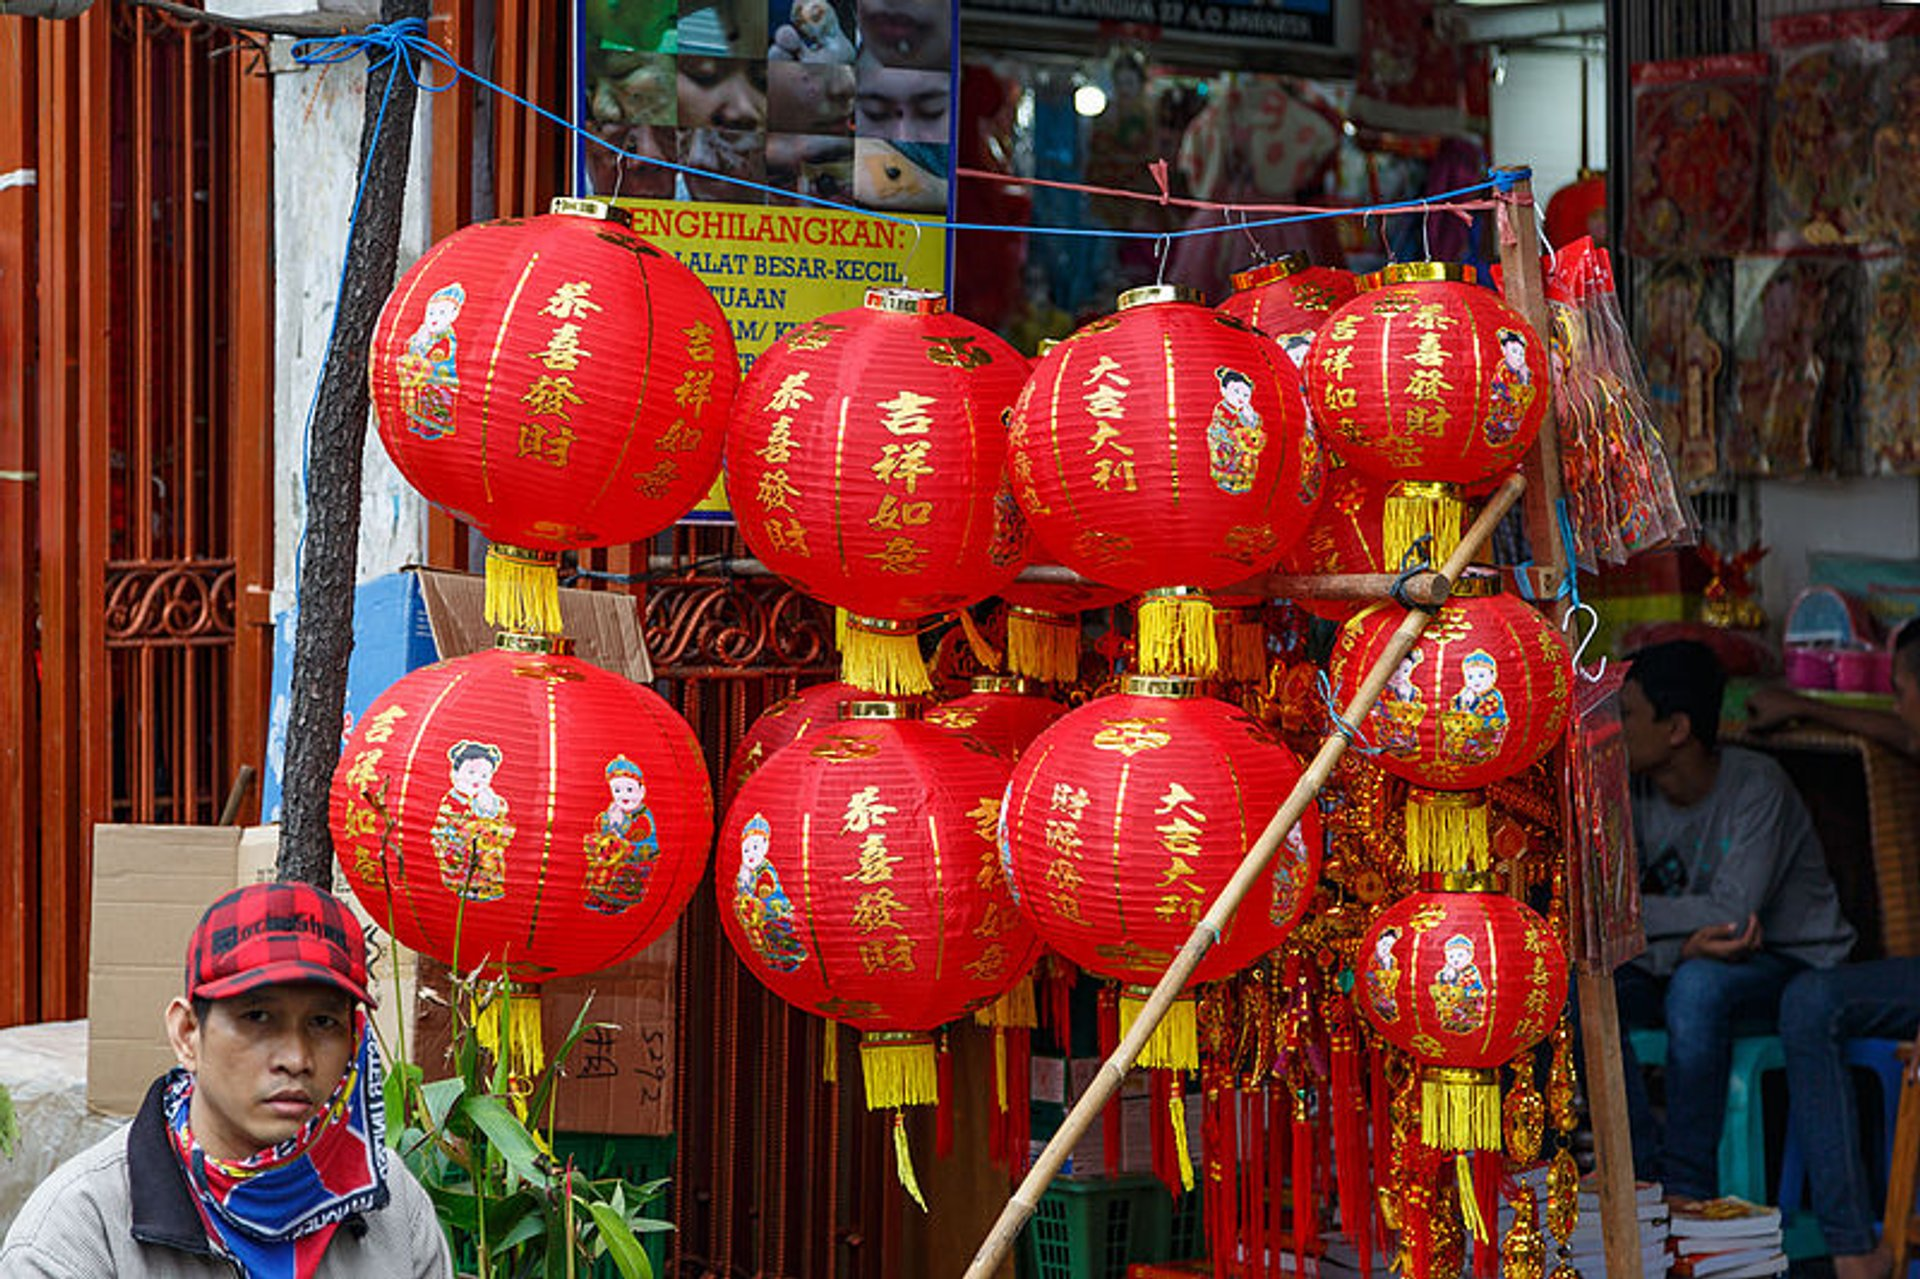 Chinese New Year in Indonesia - Best Season 2020